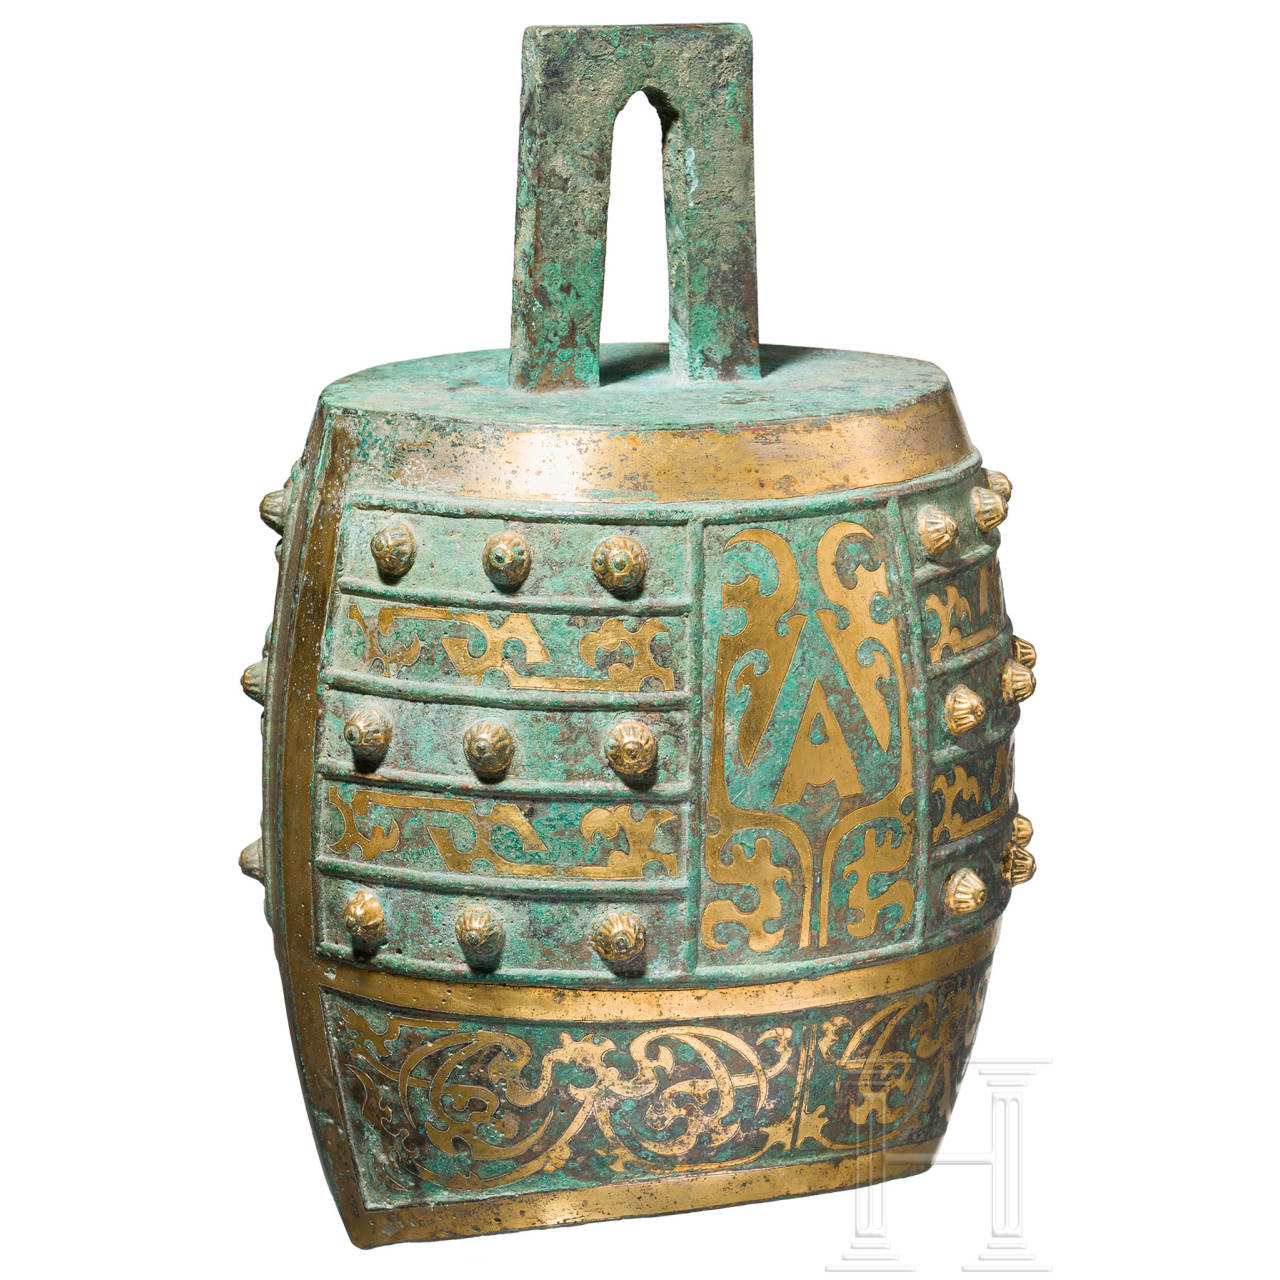 A Chinese bronze bell (zhong) with ornamental gold plating, Qin Dynasty, 3rd century B.C.